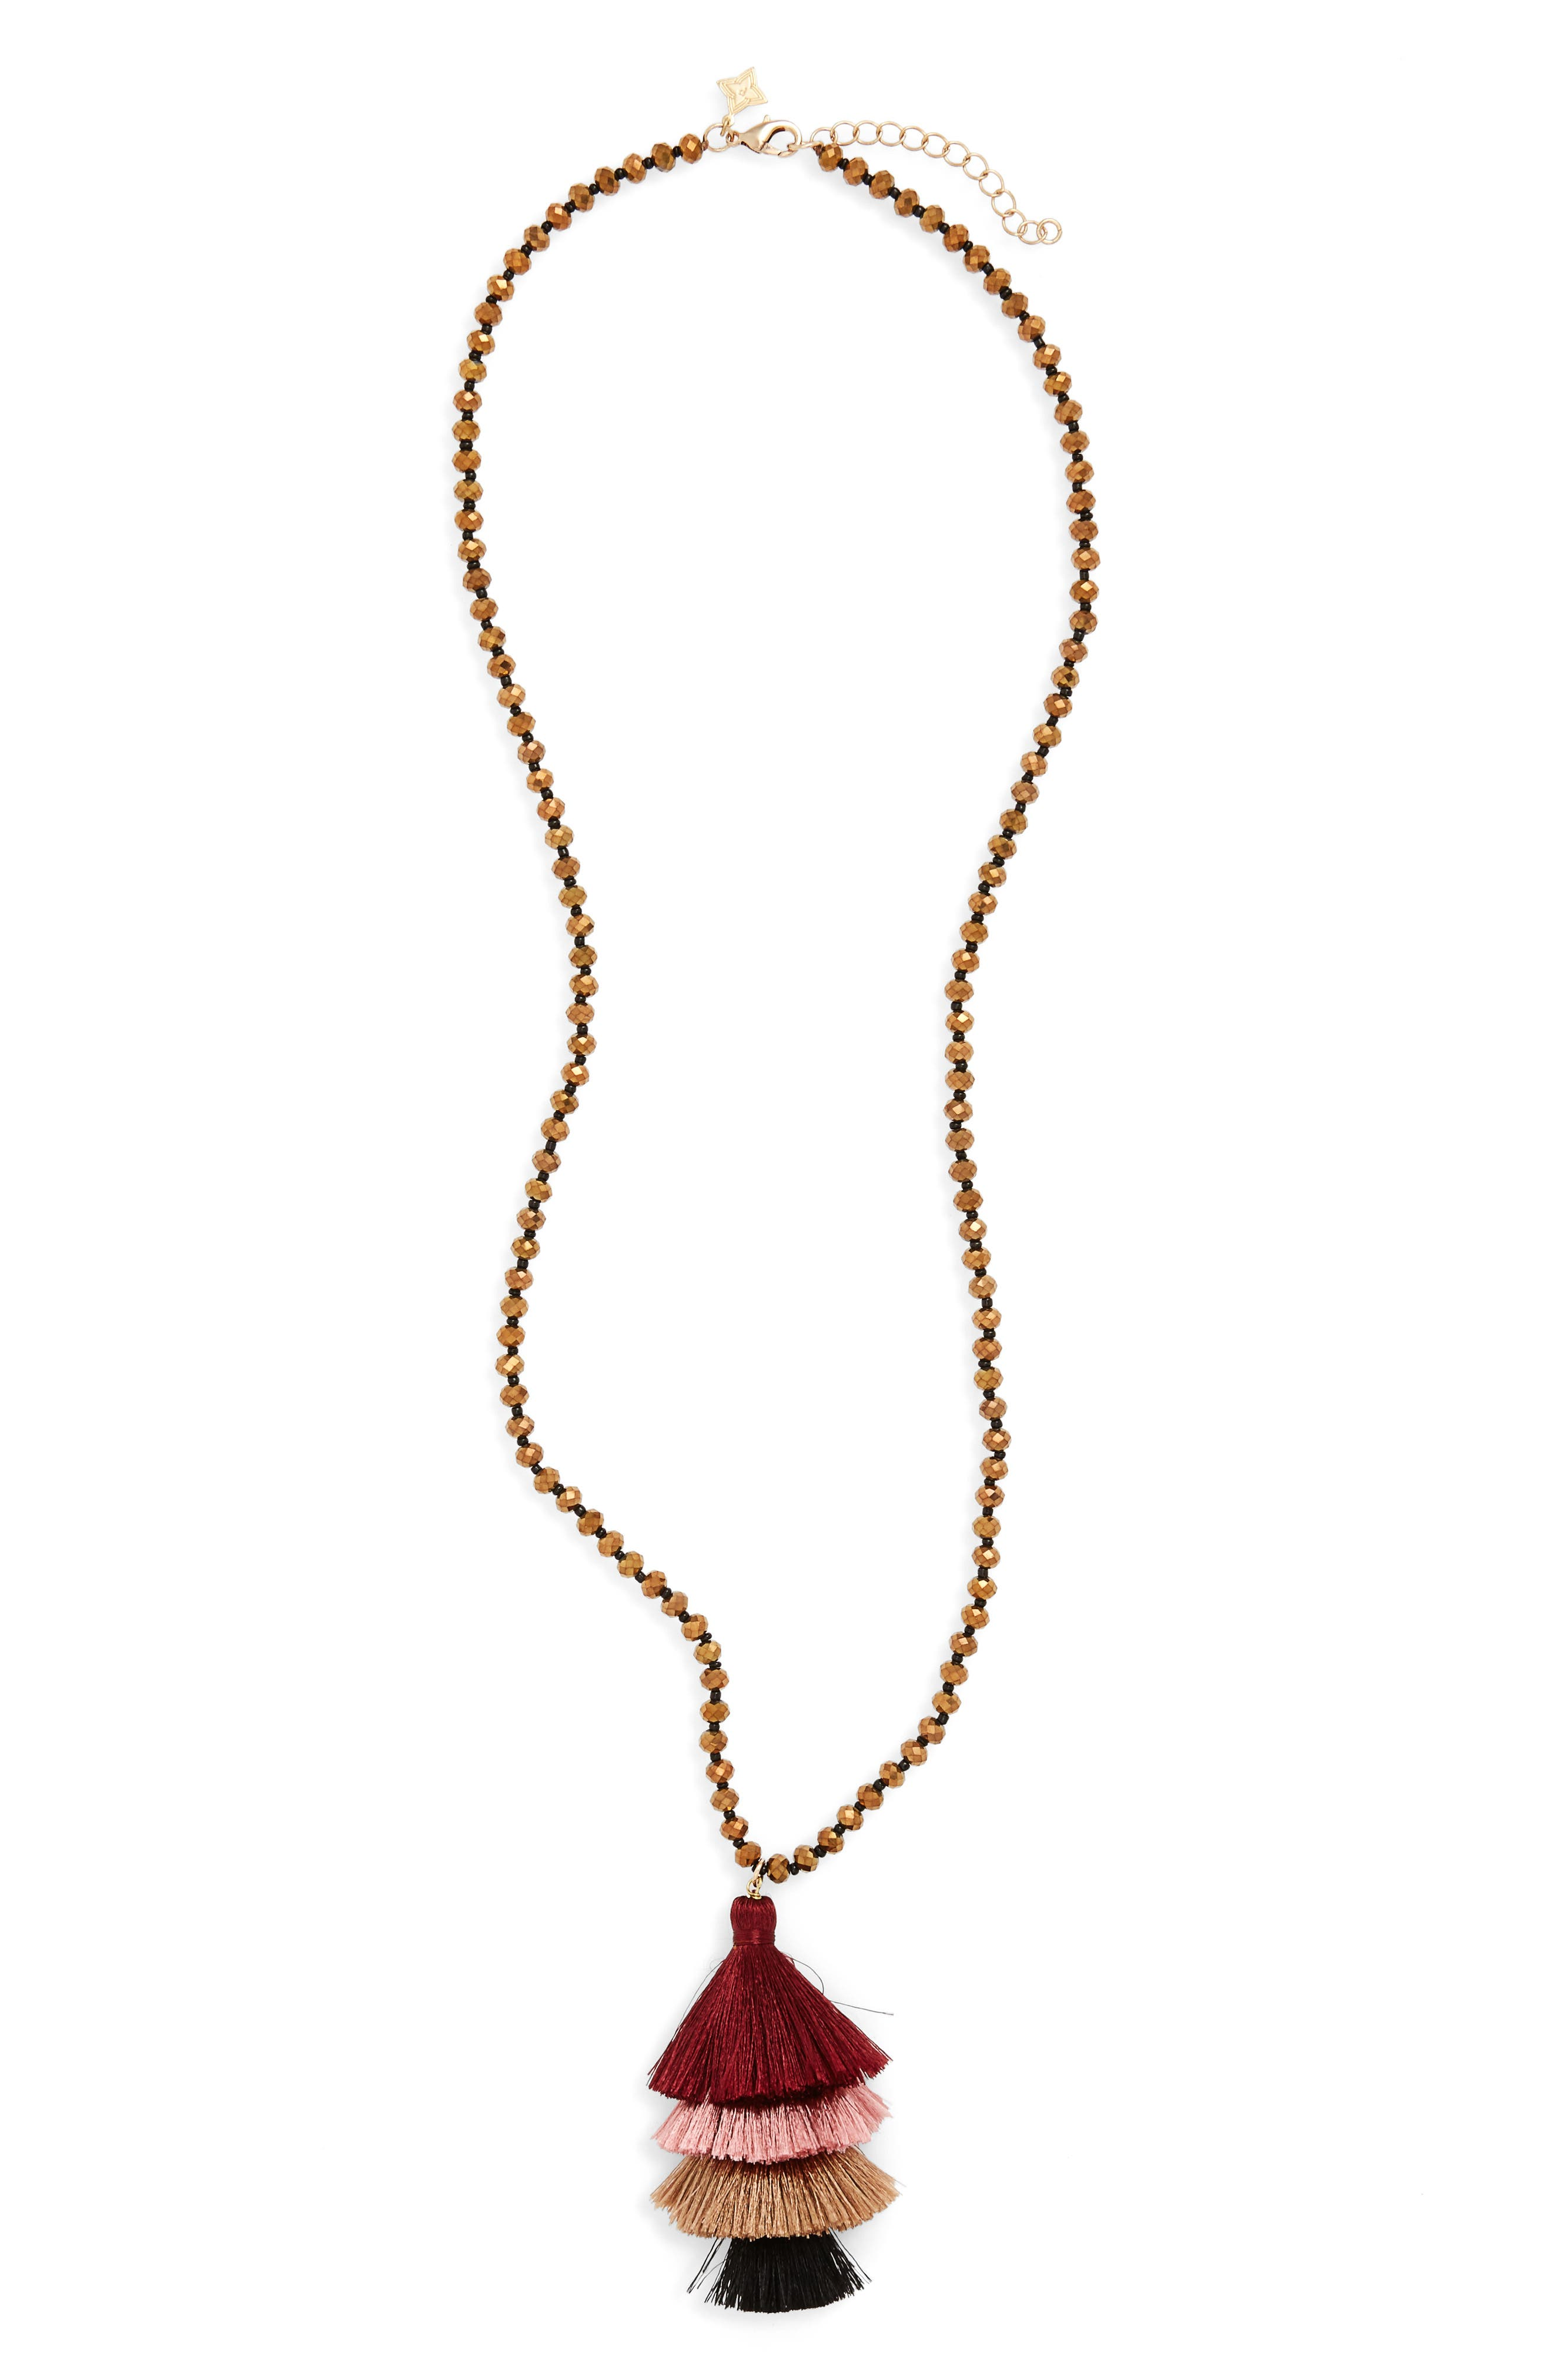 Stacked Tassel Necklace,                         Main,                         color, Burgundy